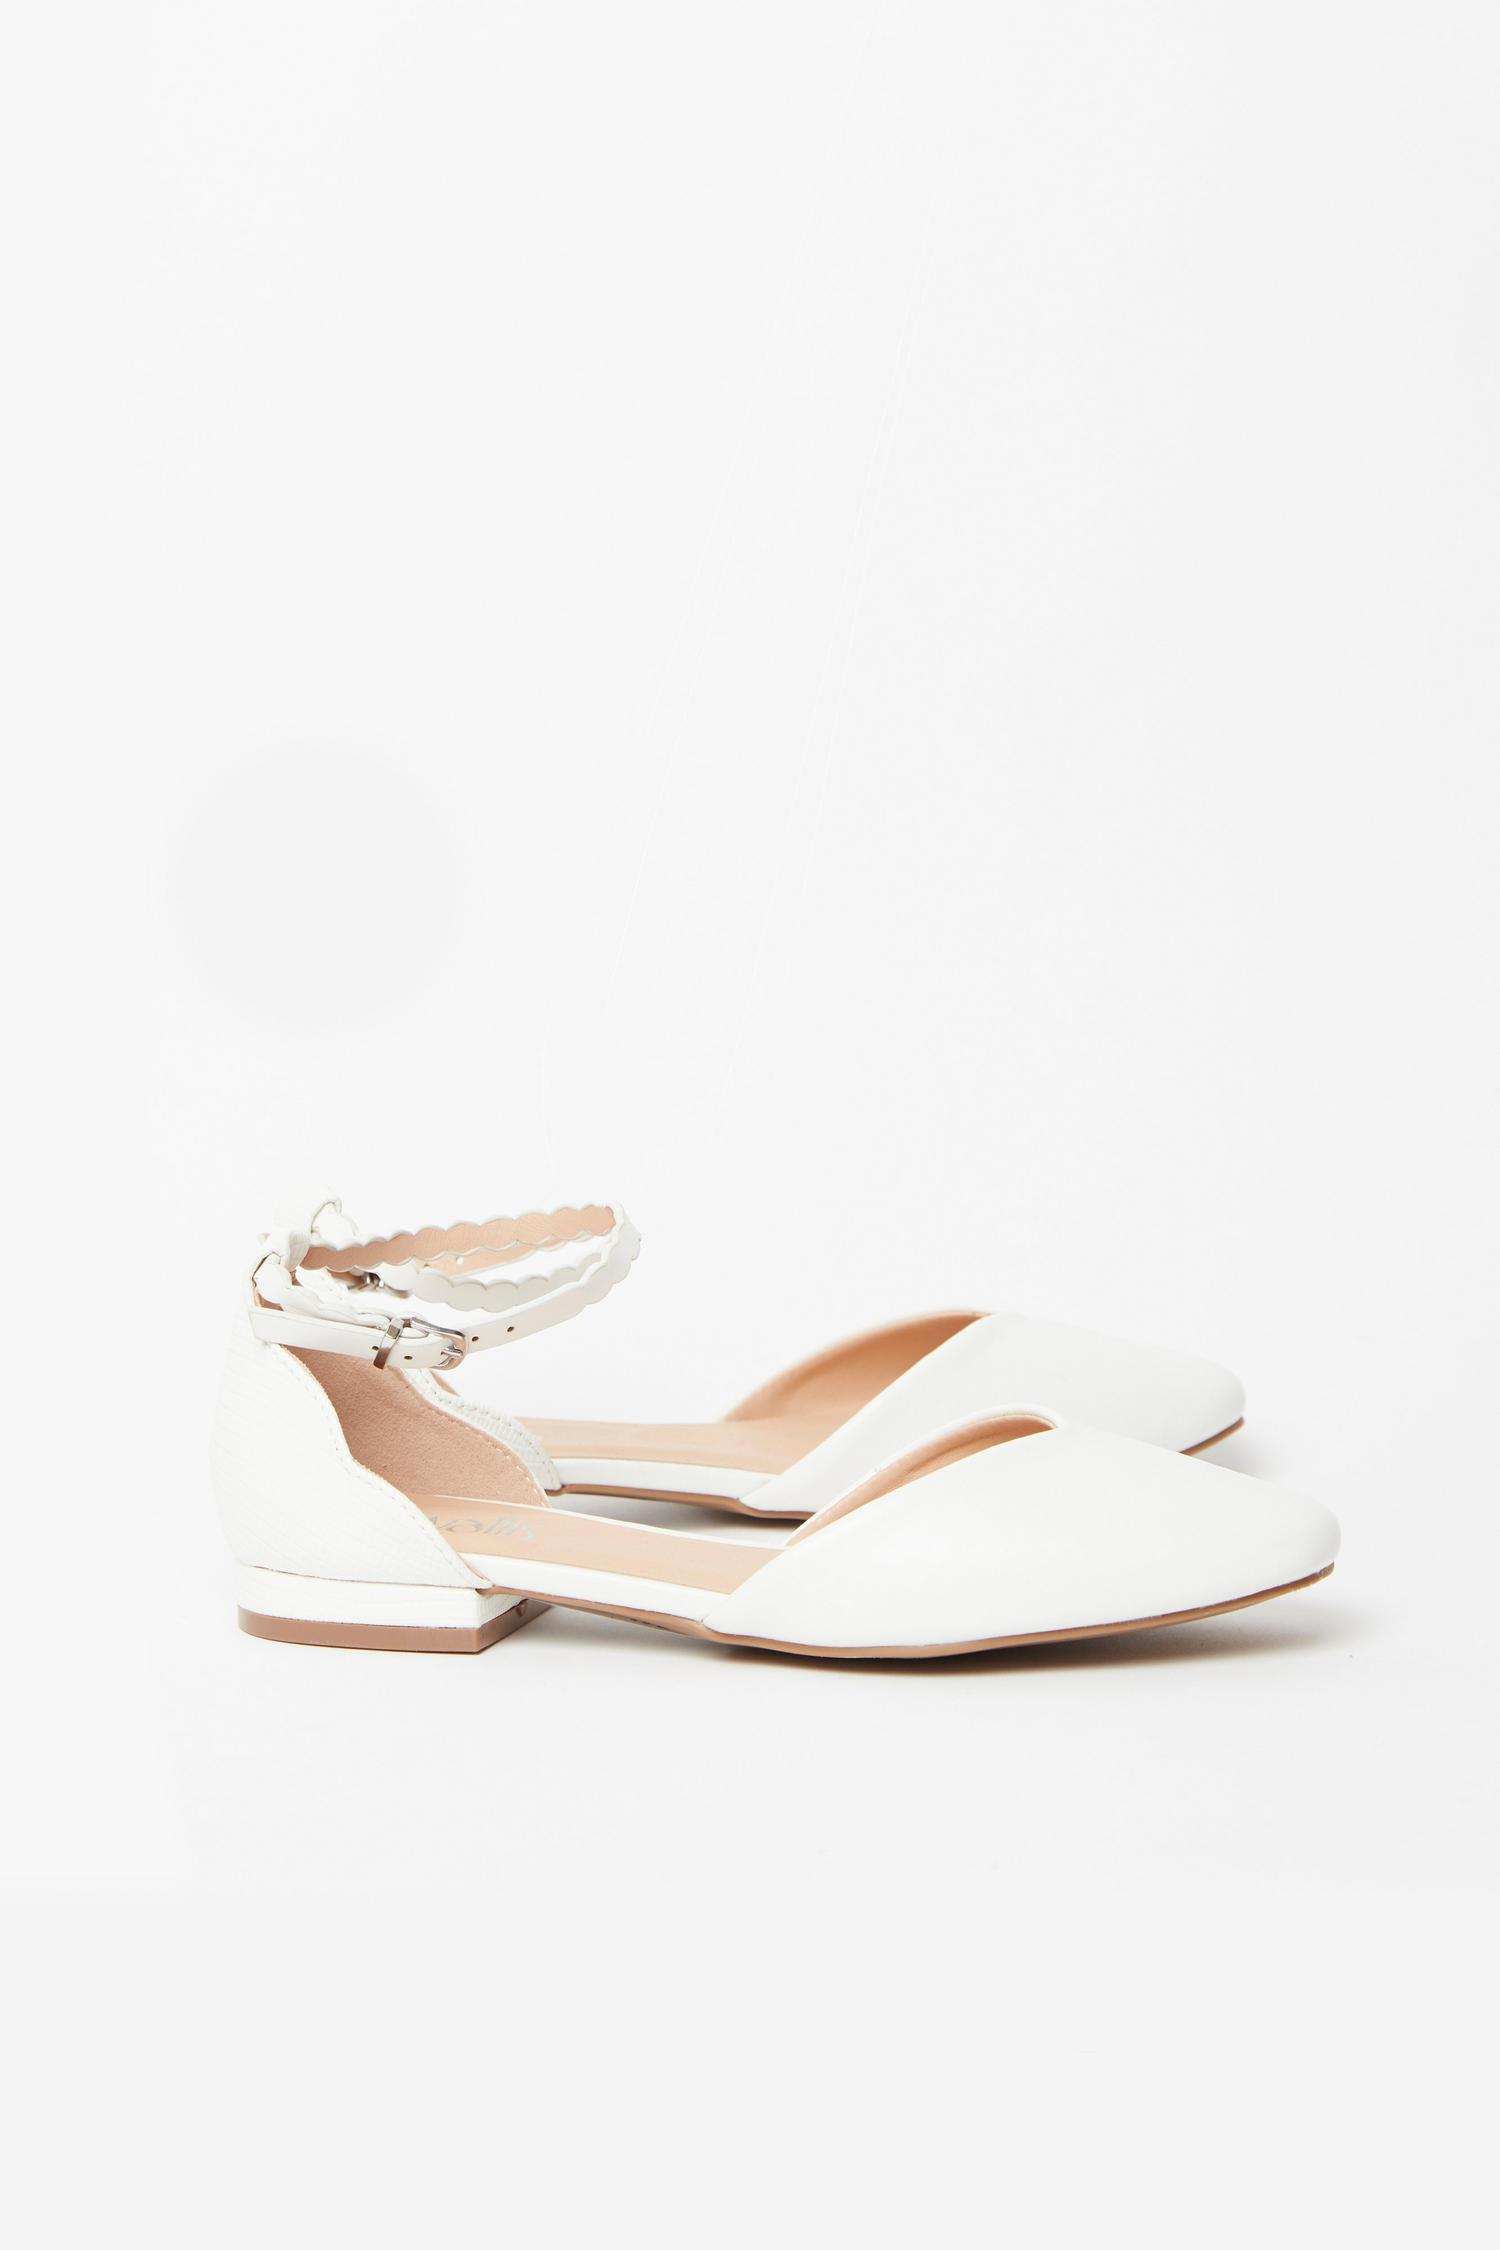 173 White Ankle Strap Shoe image number 3